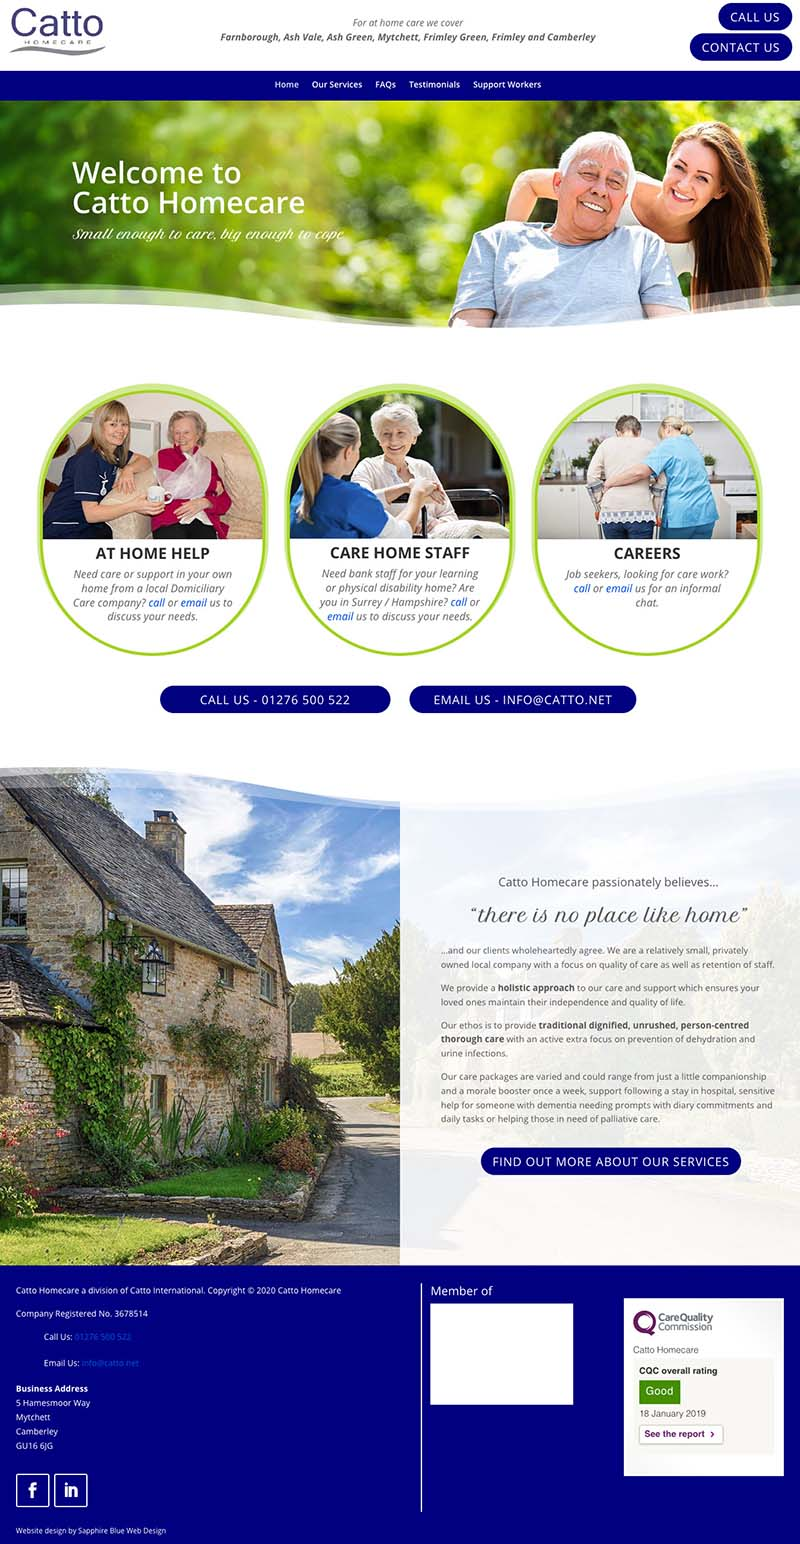 This shows a full page version of the home page for Catto Homecare